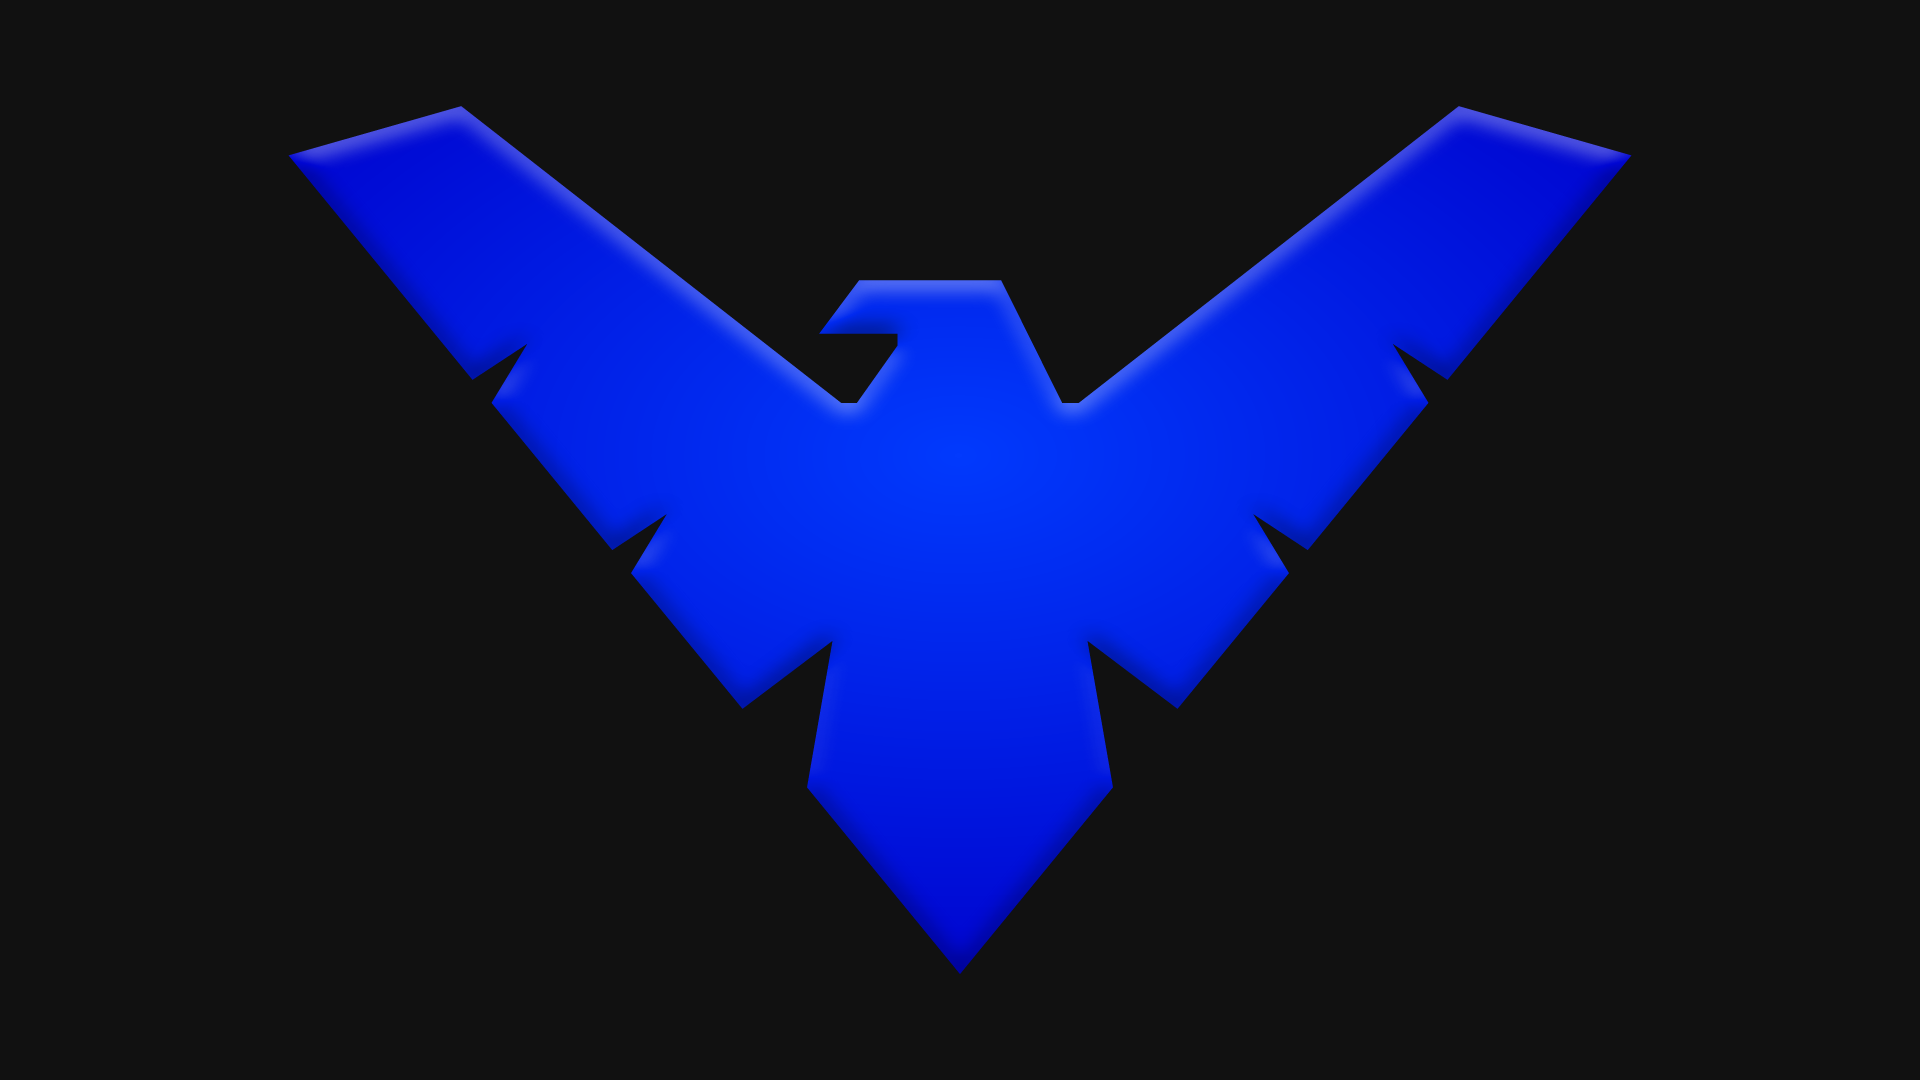 Nightwing Symbol by Yurtigo on DeviantArt